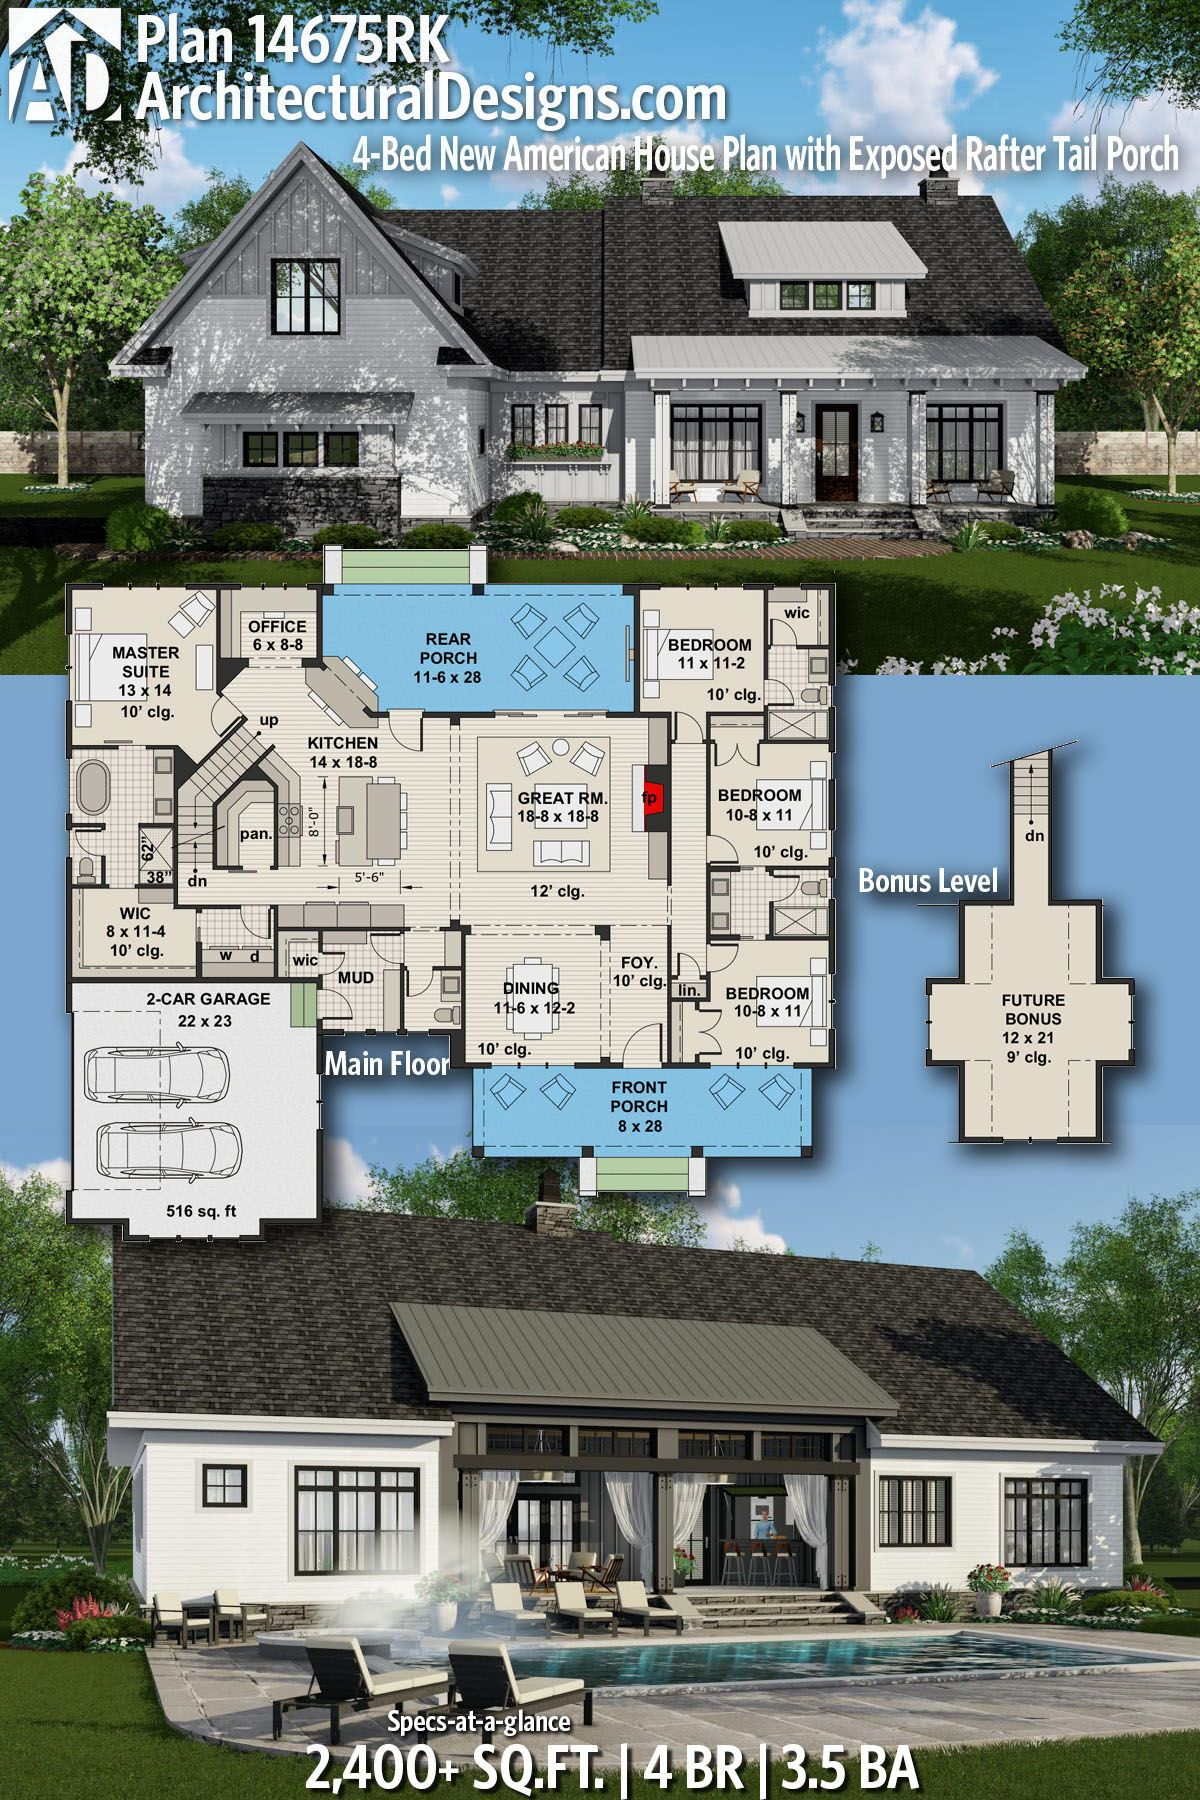 Plan 14675rk 4 Bed New American House Plan With Exposed Rafter Tail Porch House Plans Farmhouse Modern Farmhouse Plans Farmhouse Plans